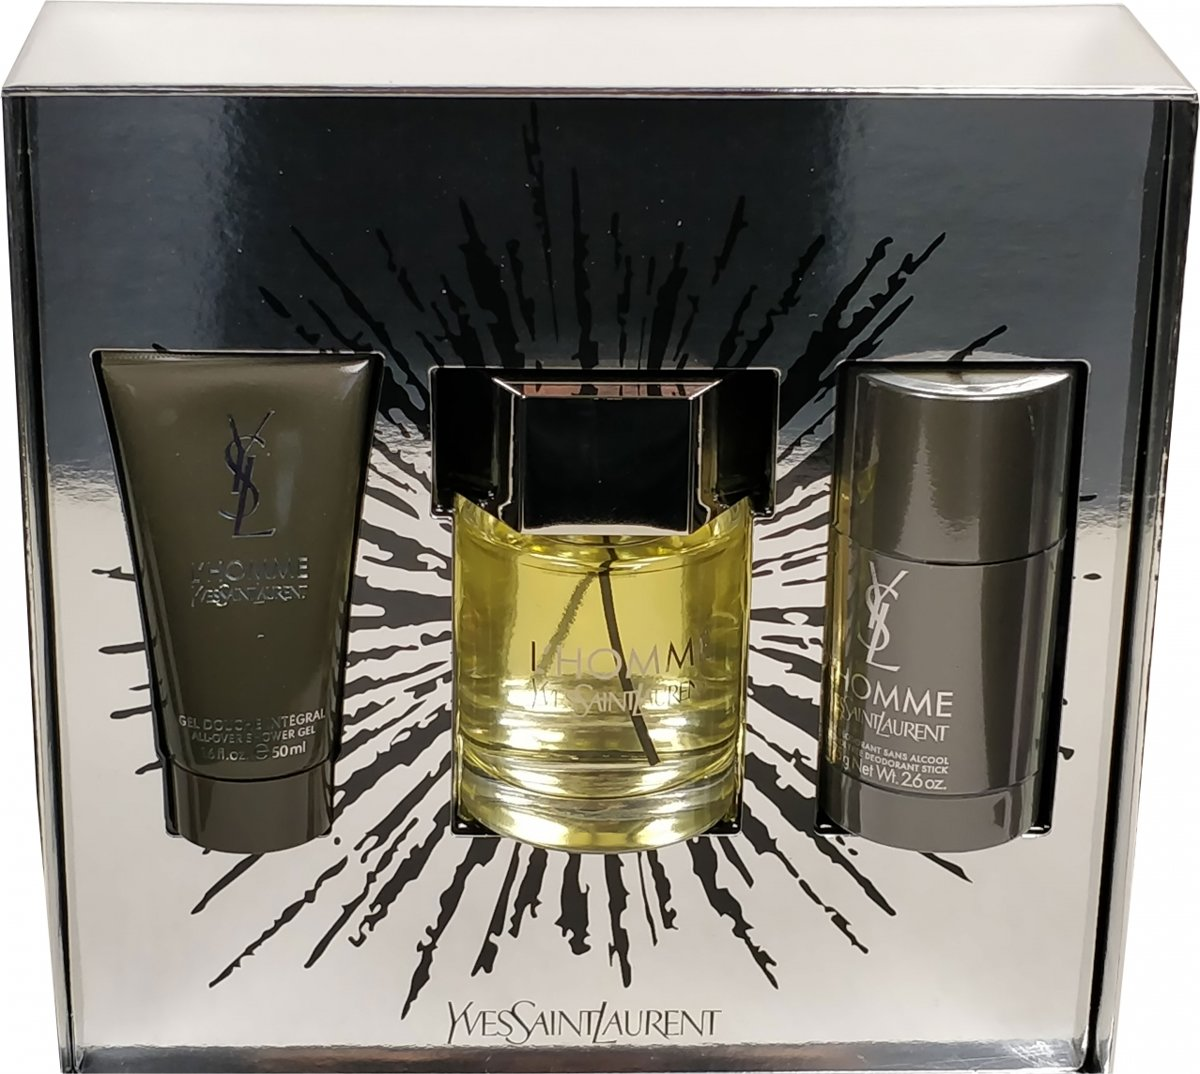 Yves Saint Laurent - Eau de toilette - Lhomme 100ml eau de toilette + 75ml deostick + 50ml showergel - Gifts ml